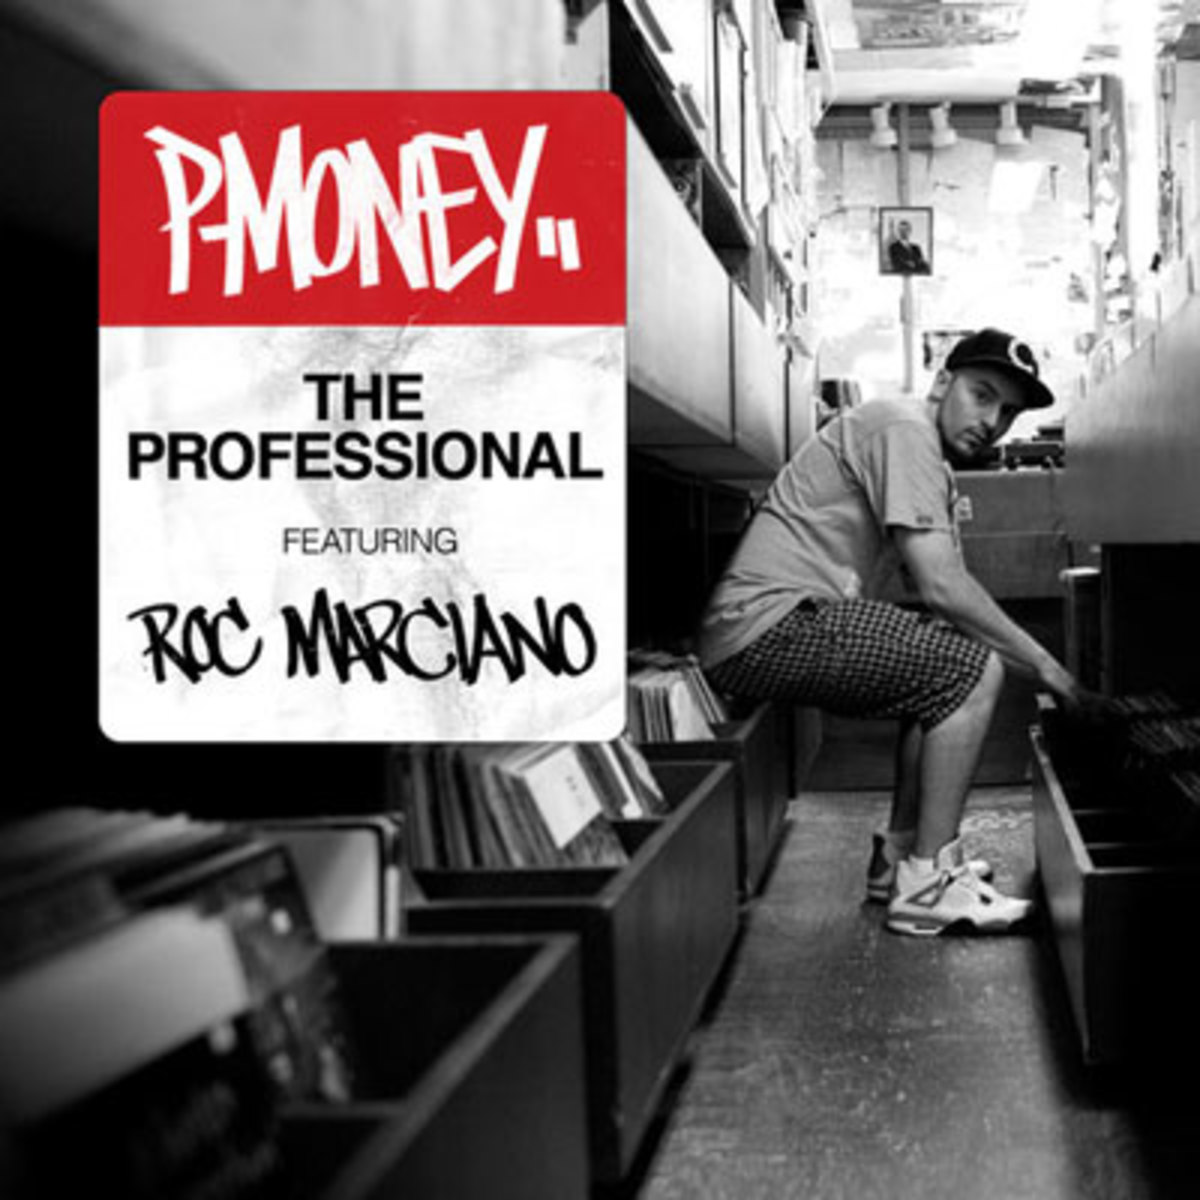 pmoney-theprofessional.jpg